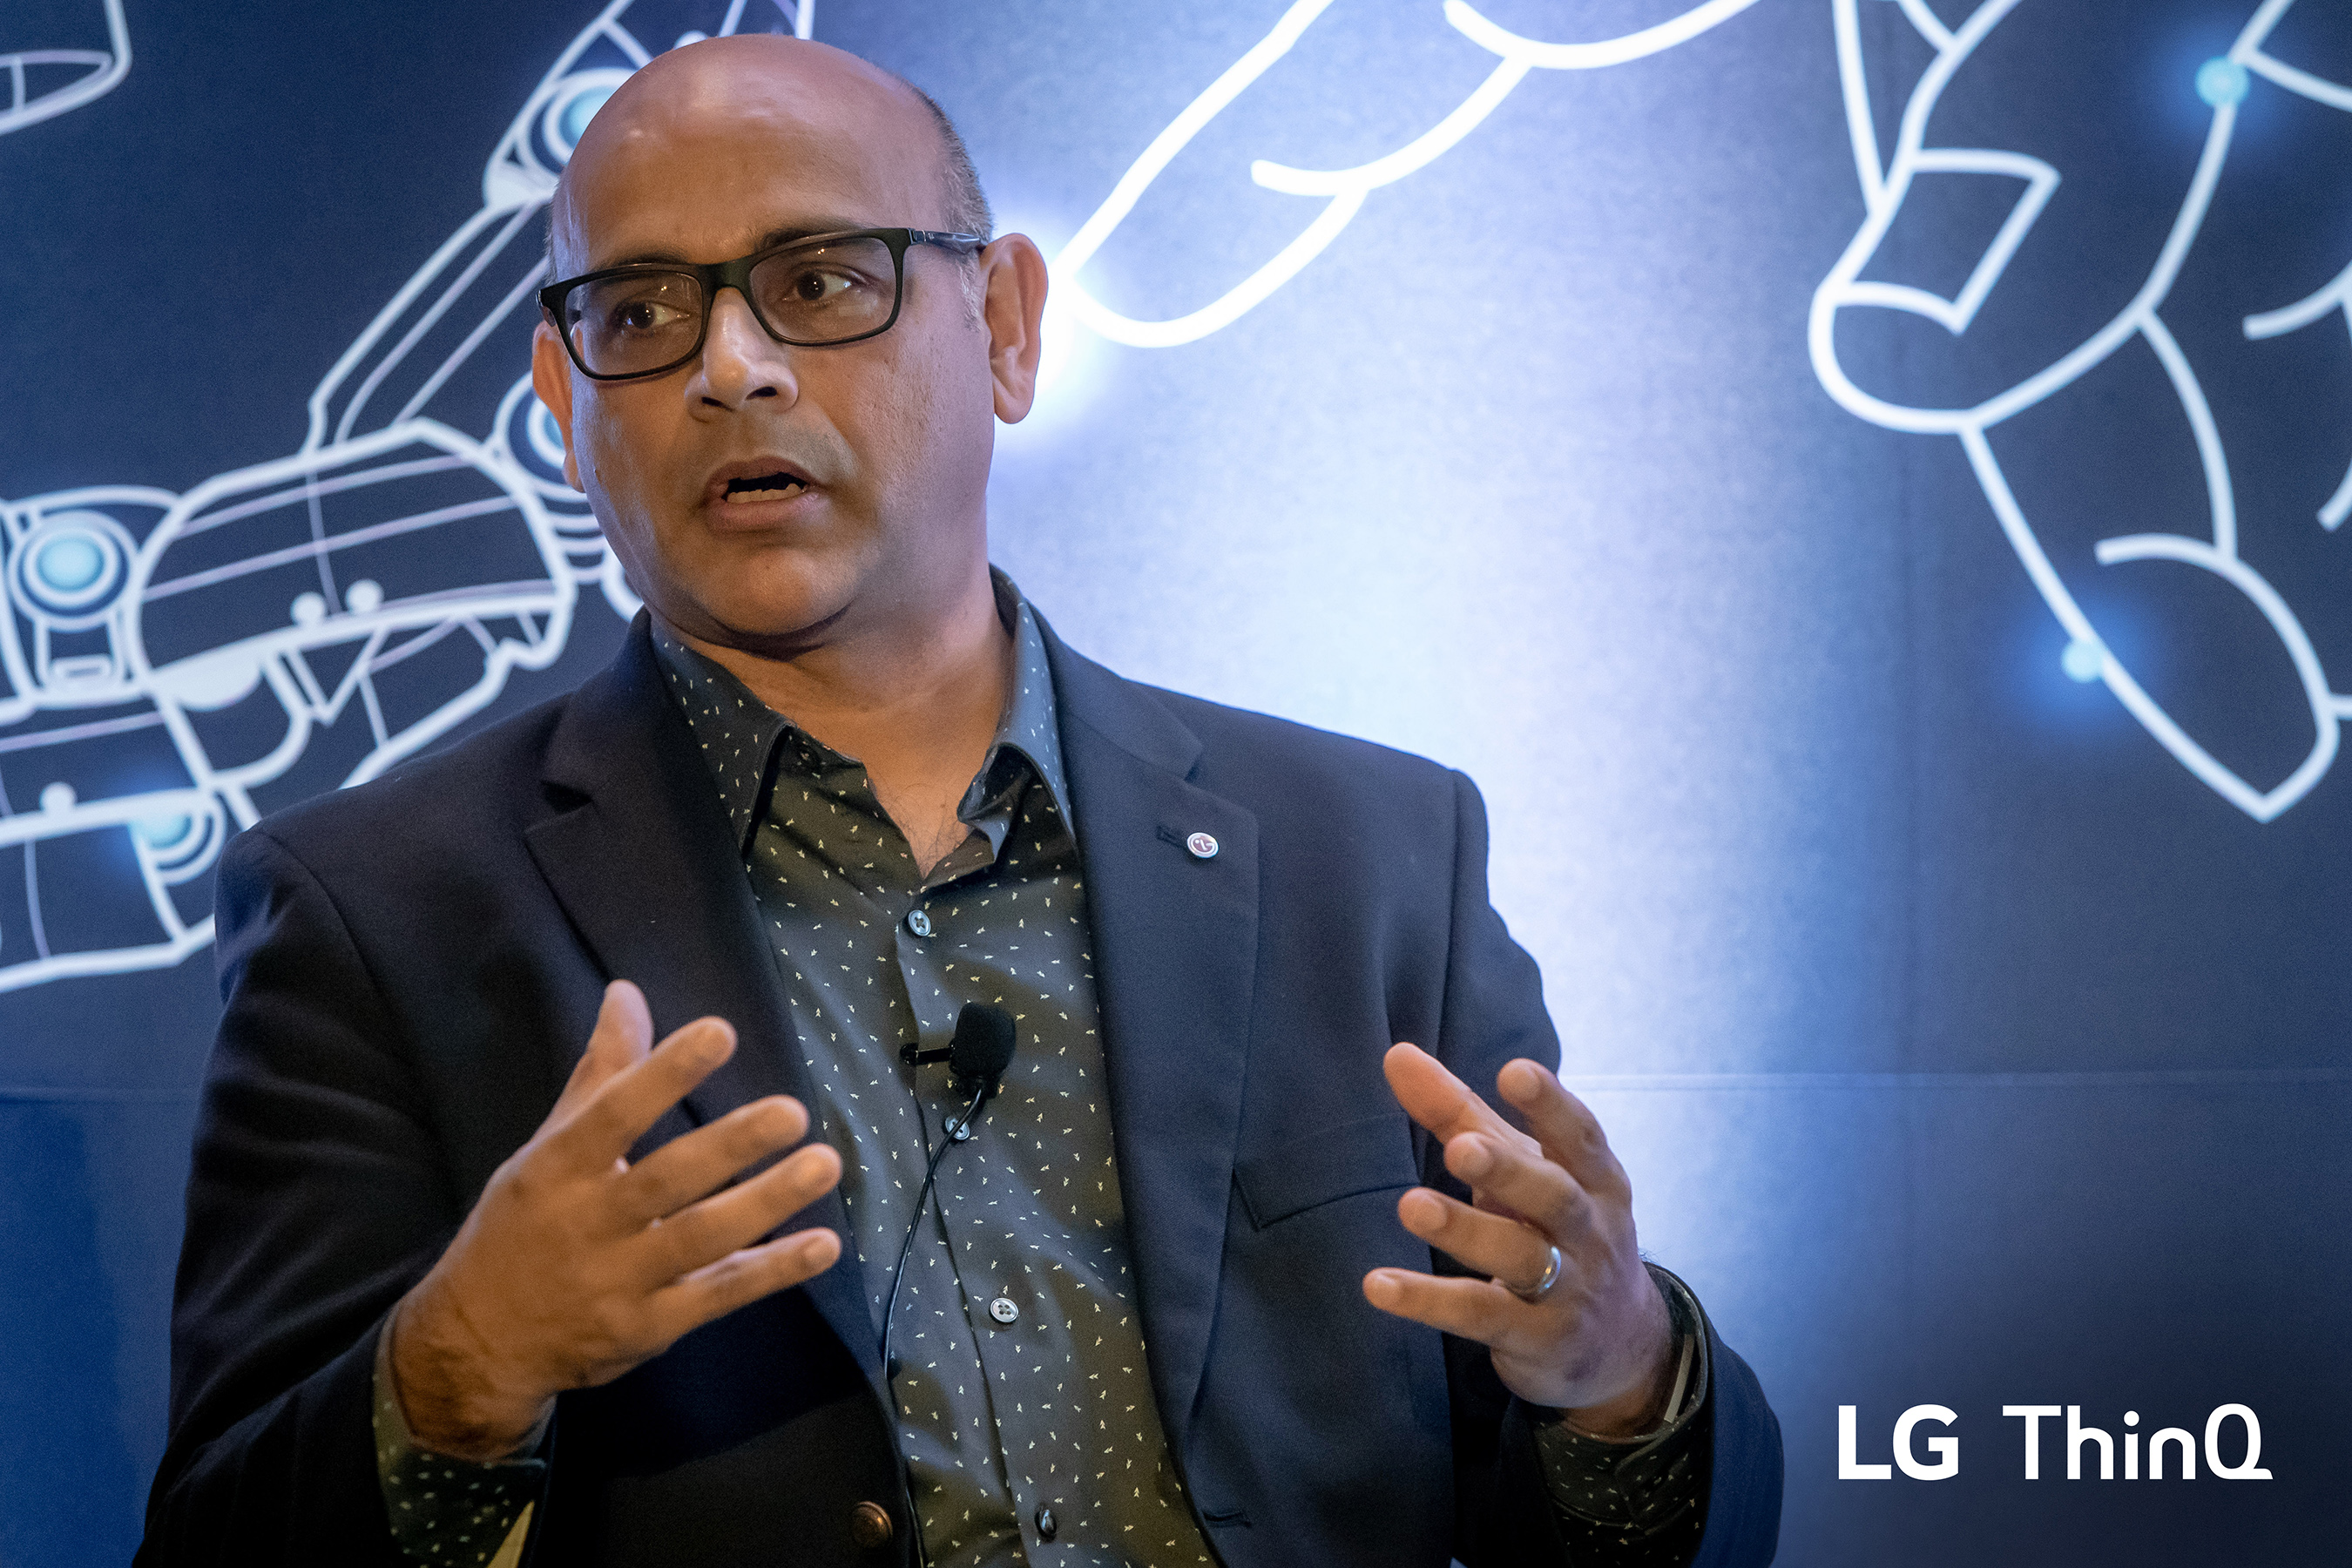 LG ThinQ introduced by Mohammed Ansari, Senior Vice President and General Manager of the LG Silicon Valley Lab